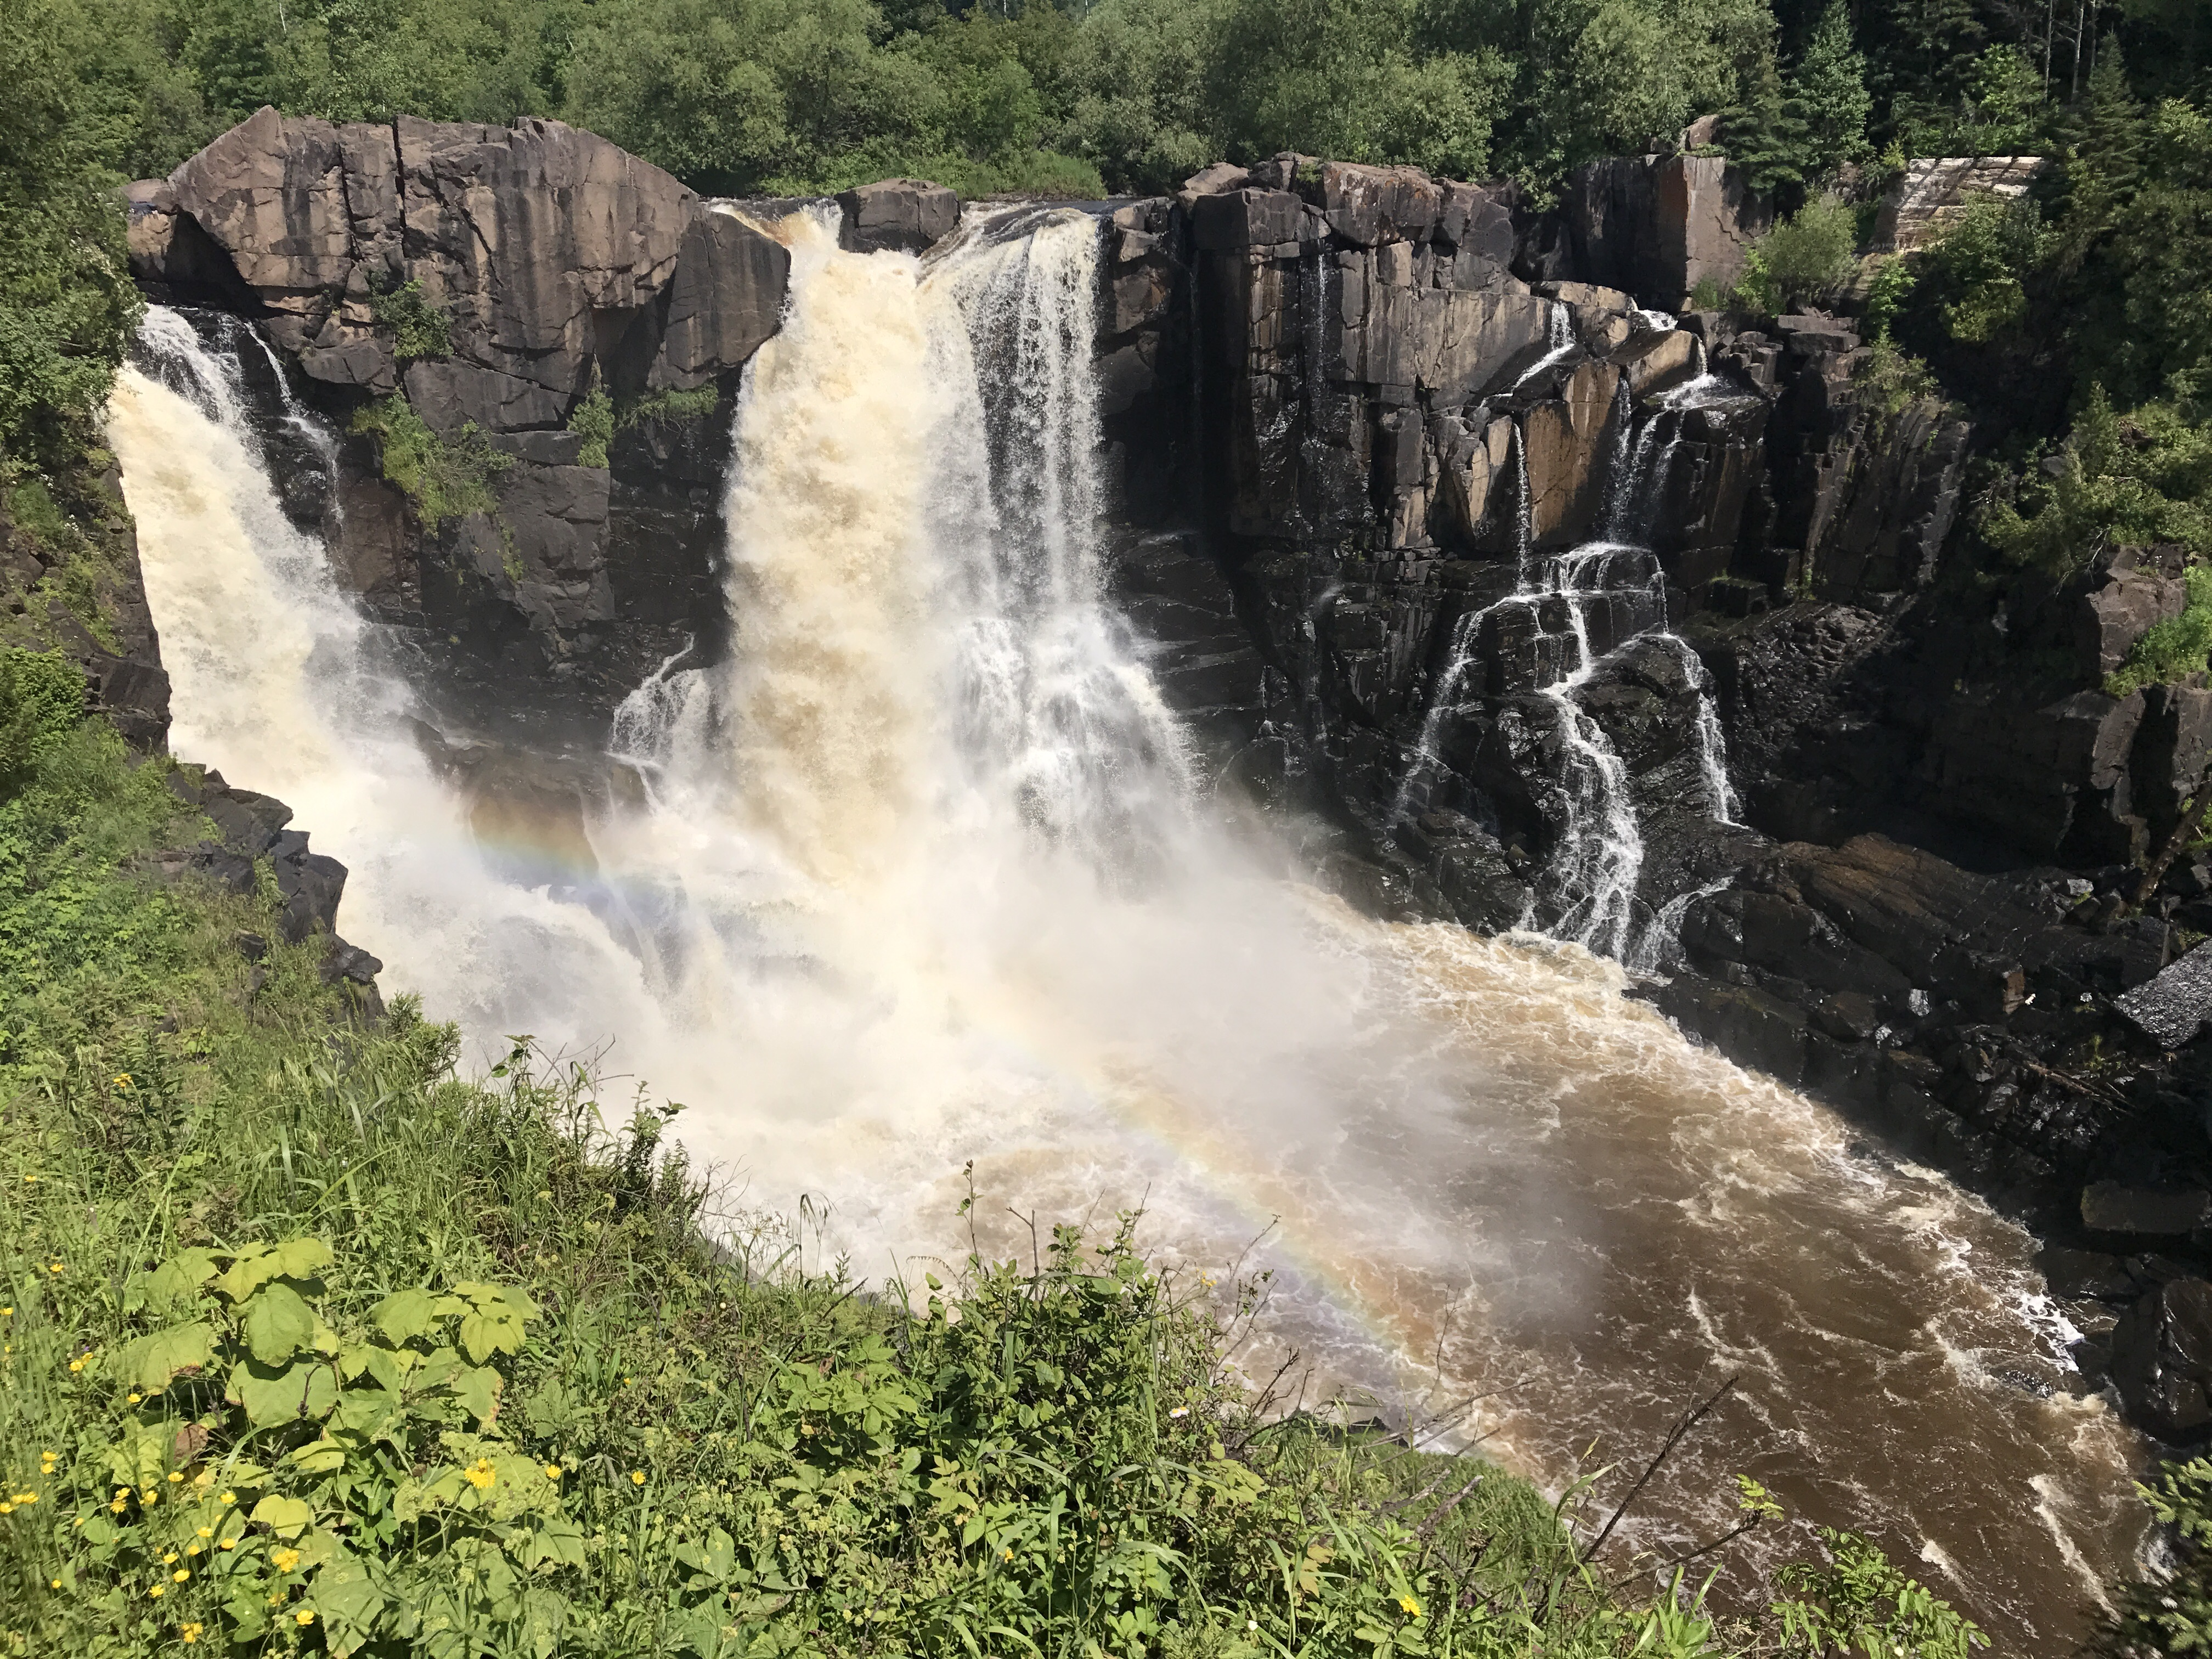 hindu singles in grand portage Things to do in minnesota, united states - minnesota attractions high falls grand portage 95 reviews #1 of 5 things to do in grand portage waterfalls more info.